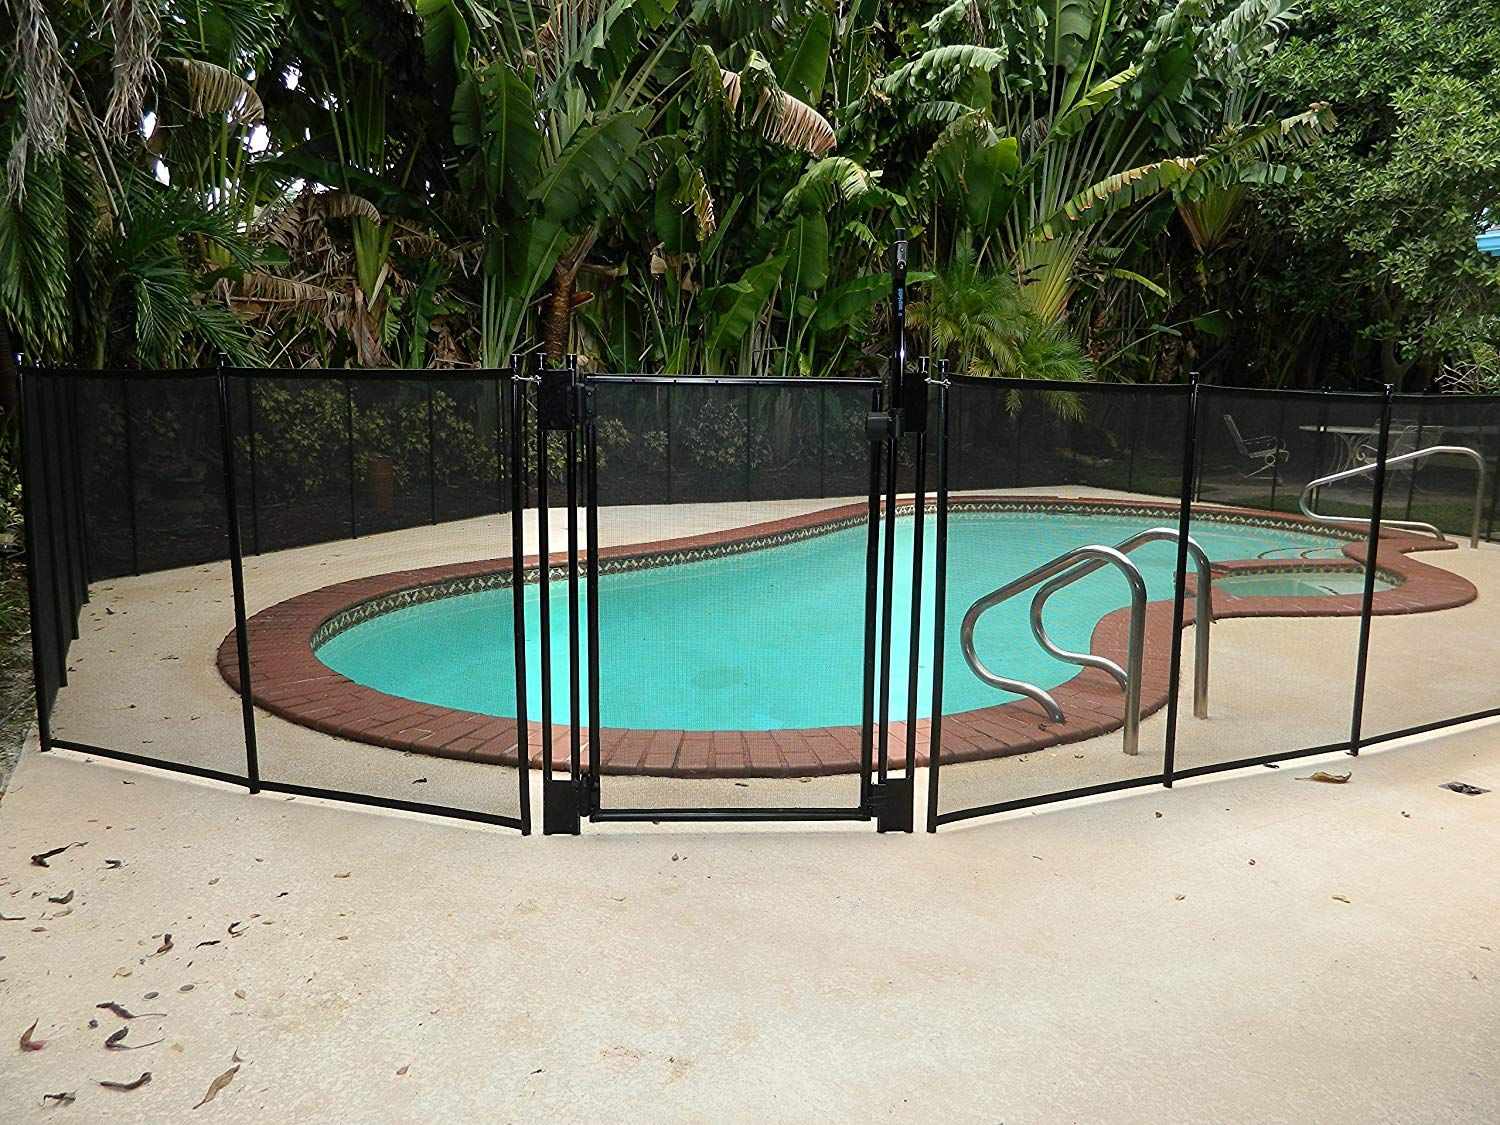 Pool Fence Diy By Life Saver Self Closing Gate Kit Black Pool Safety Fence Backyard Fences Safety Fence